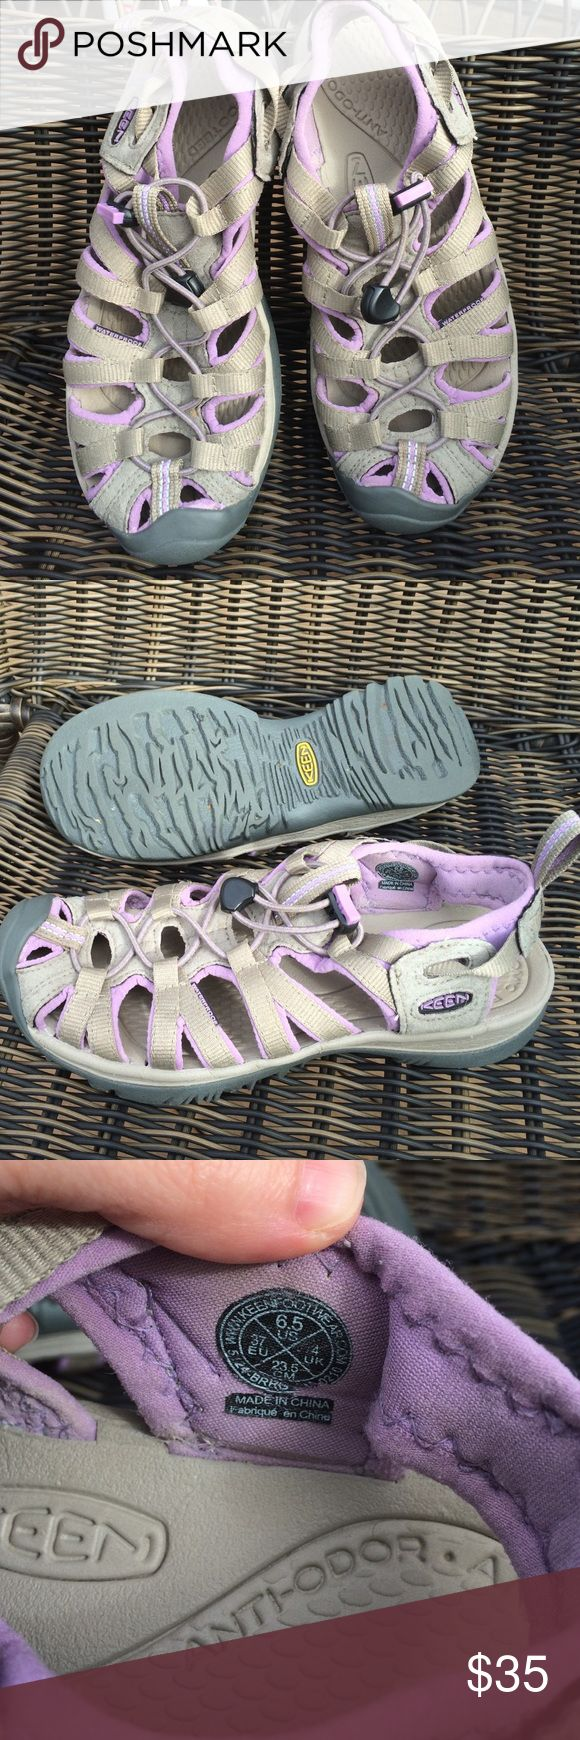 Keen sandals for water and hiking tan & lilac 6.5 Like new cond. Keen water and hiking sandals in tan khaki with lilac purple accent. Super sandal with anatomic comfy anti odor footbed, adjuster cincher cord, and ready for adventure. Size 6.5....fits 6-6.5 best in my opinion. Please know your Keen sandal size as there are no returns on Posh. Thank you Keen Shoes Sandals